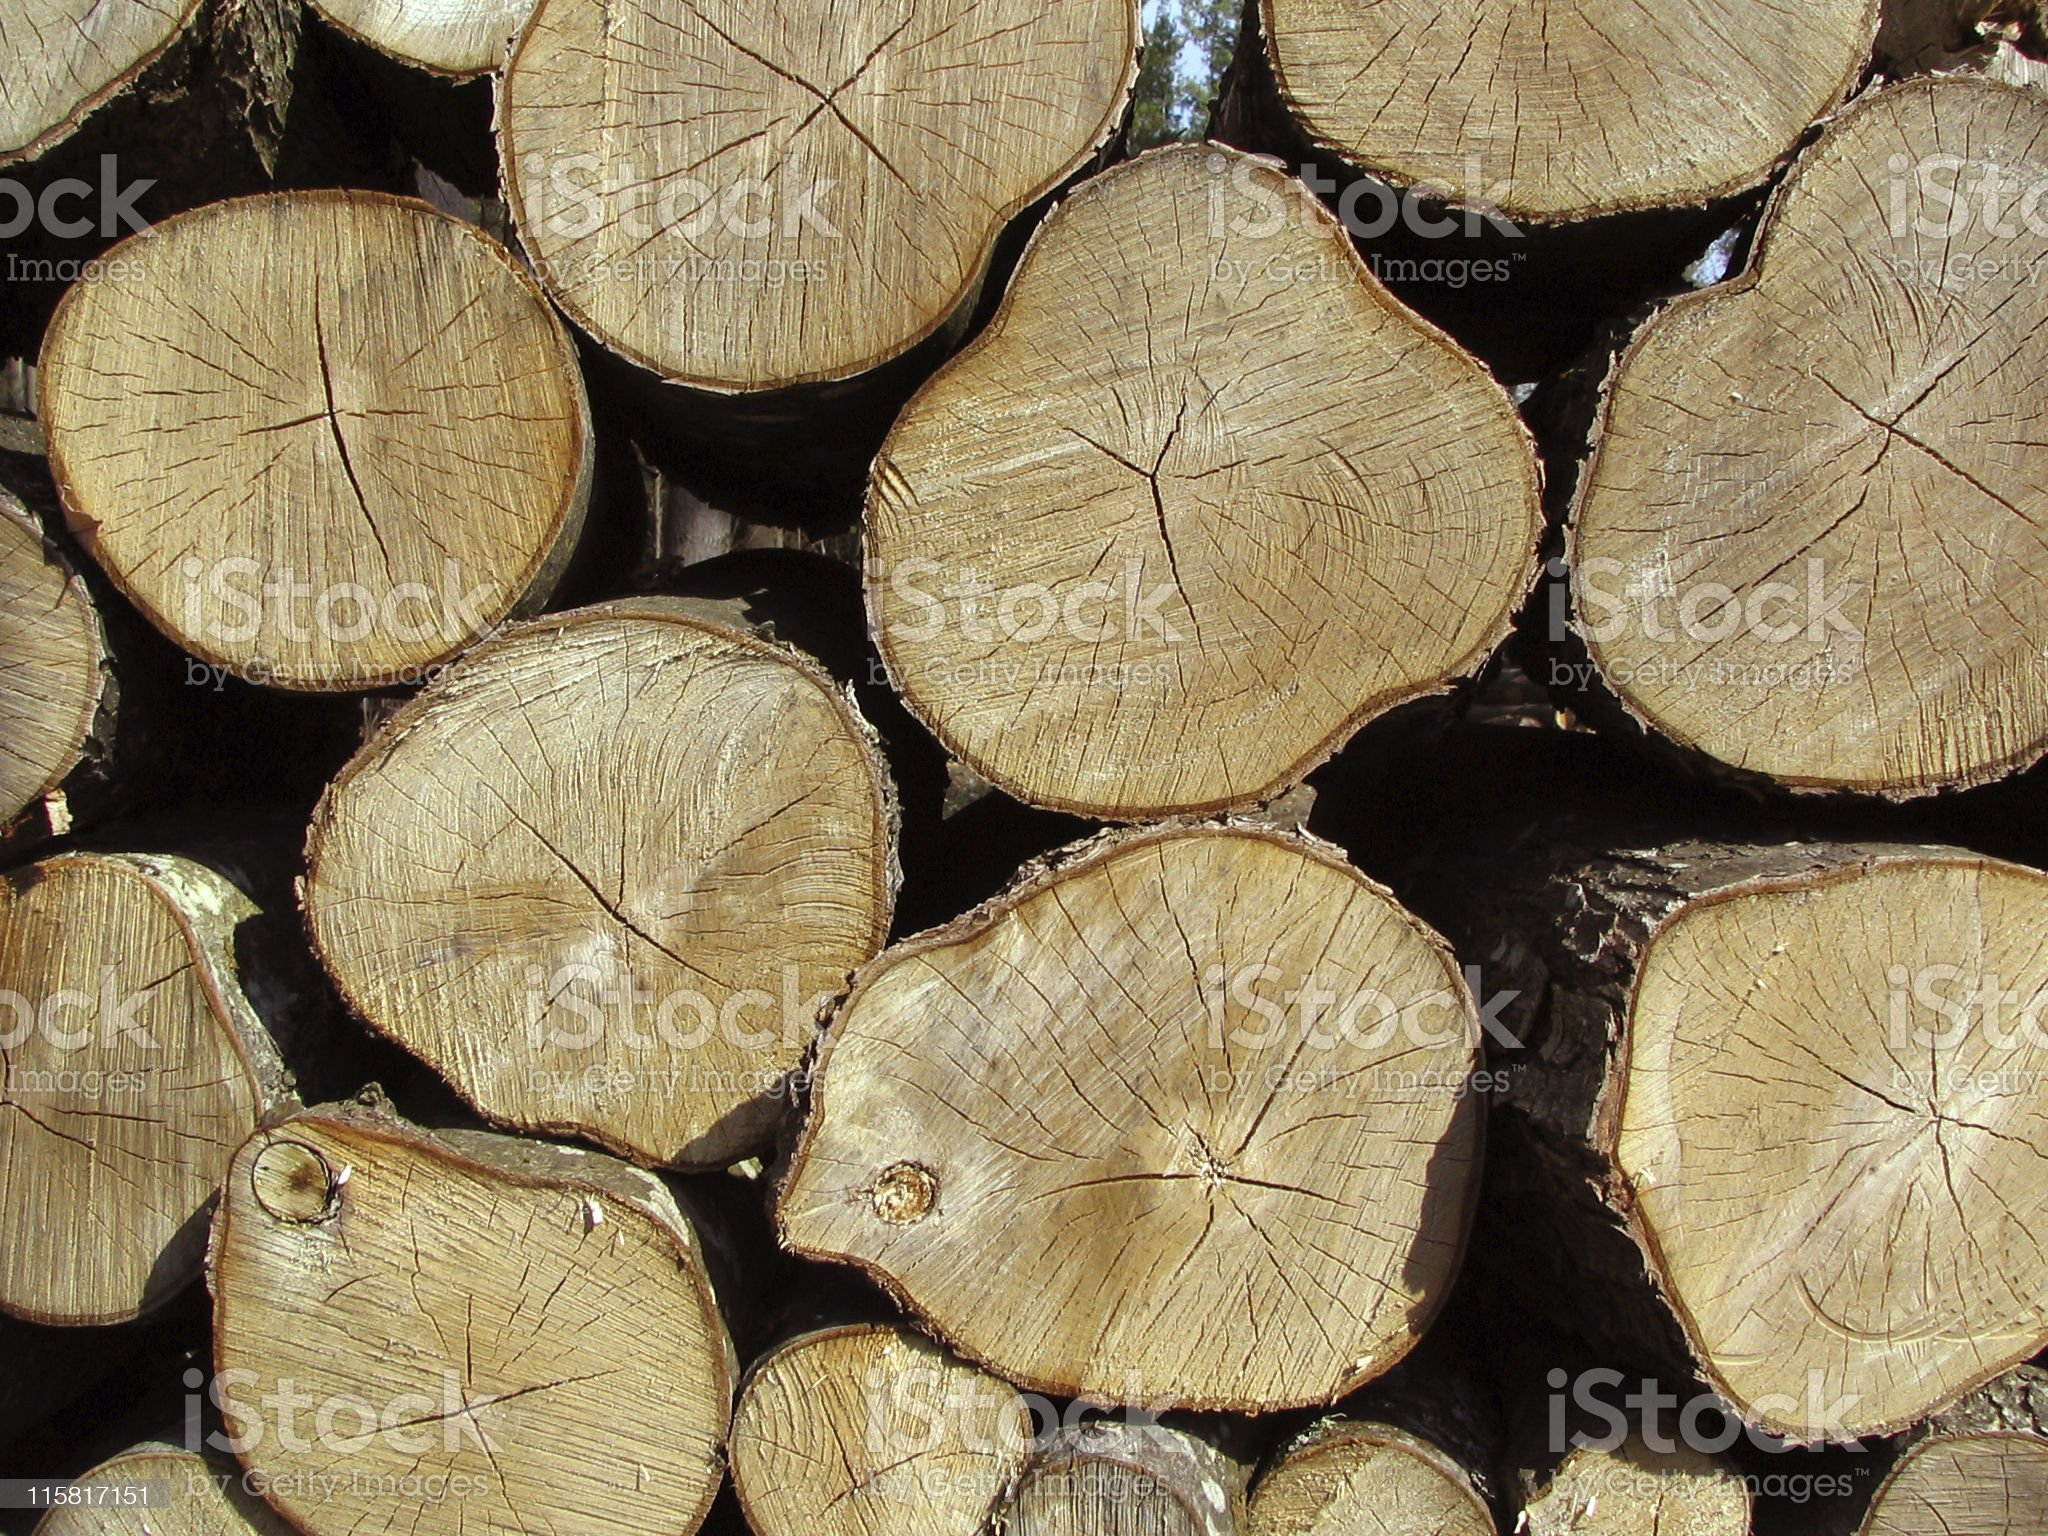 Pile of Aging Logs royalty-free stock photo